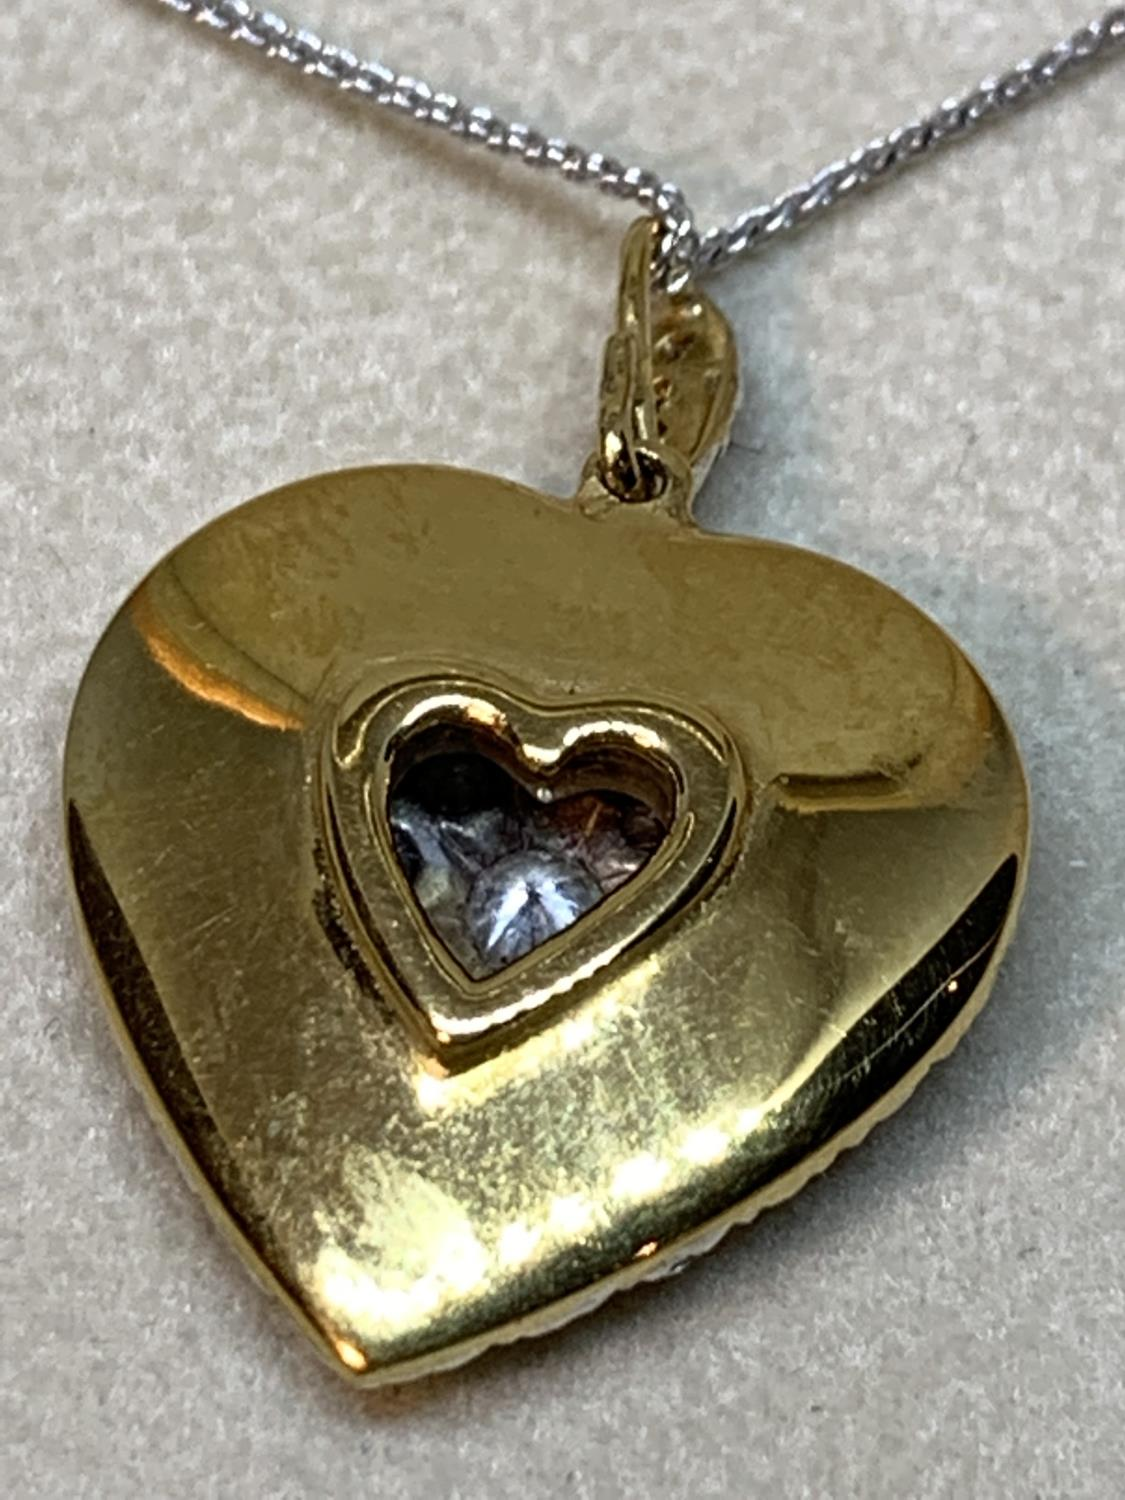 A 15 CARAT WHITE AND YELLOW GOLD LARGE DIAMOND ENCRUSTED HEART PENDANT WITH CHAIN LENGTH 44CM IN A - Image 6 of 8